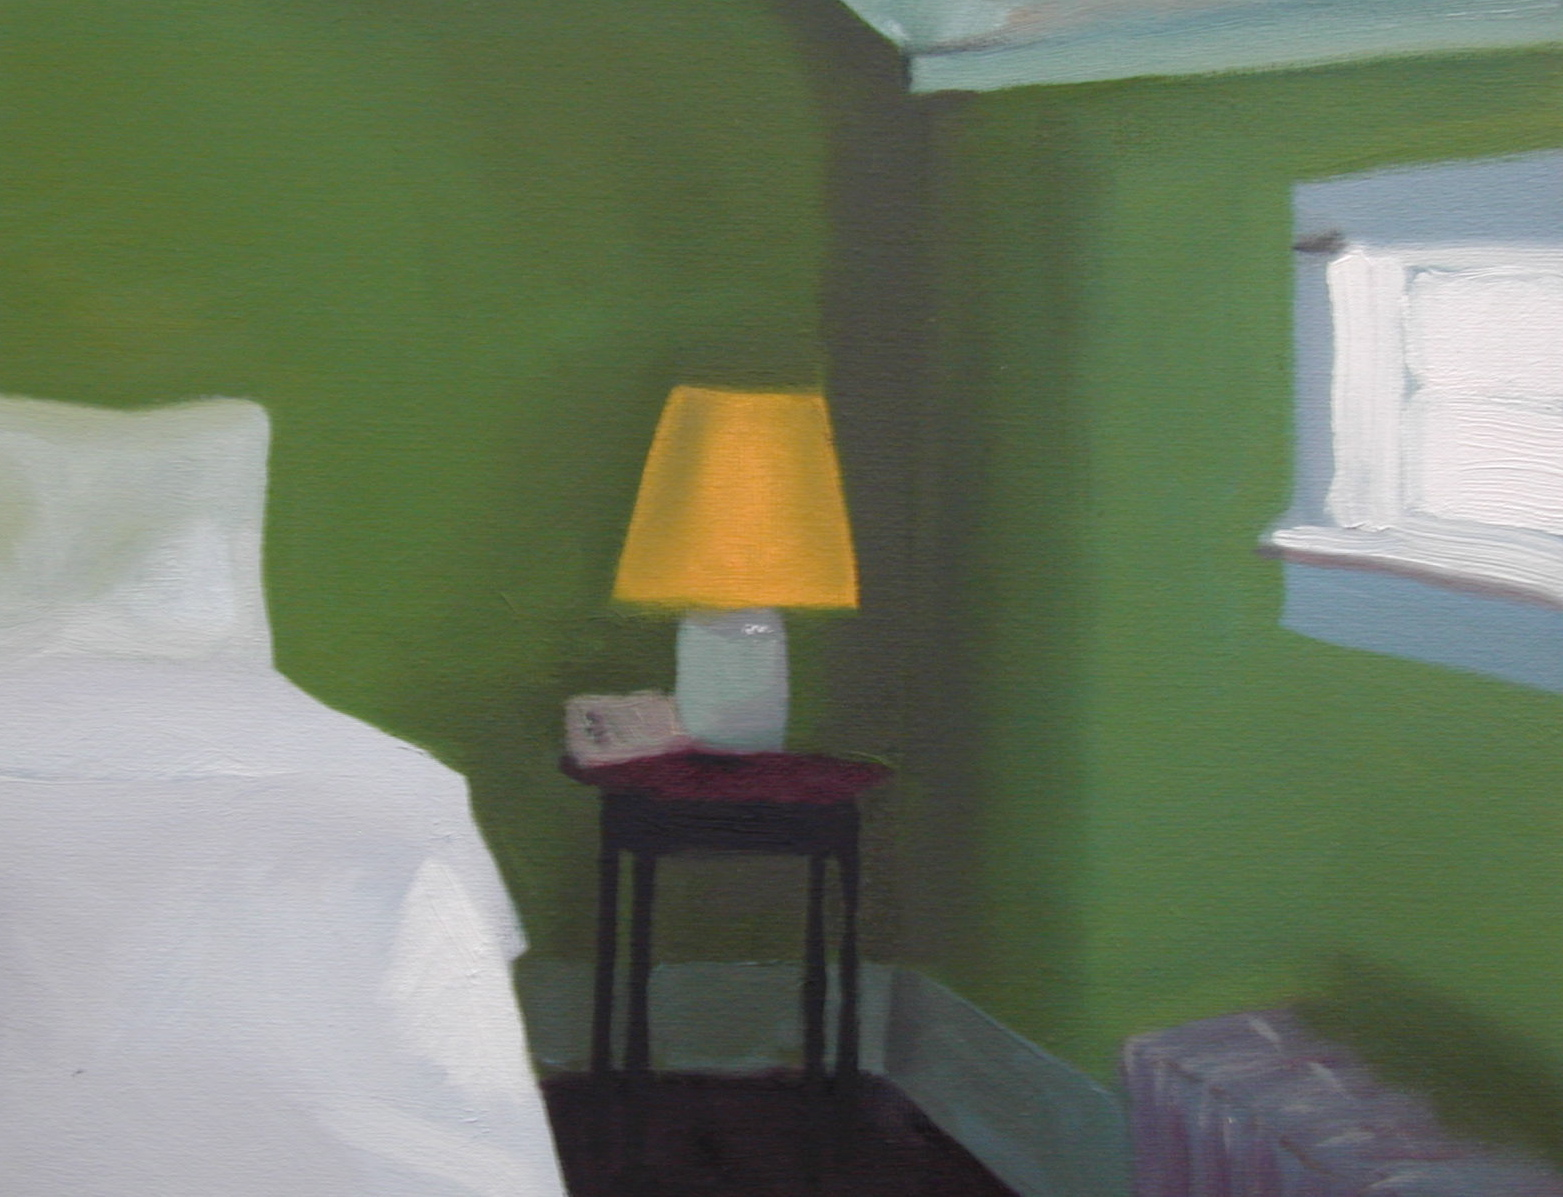 Well room. 8 x 10 inches, oil on canvas  (sold)